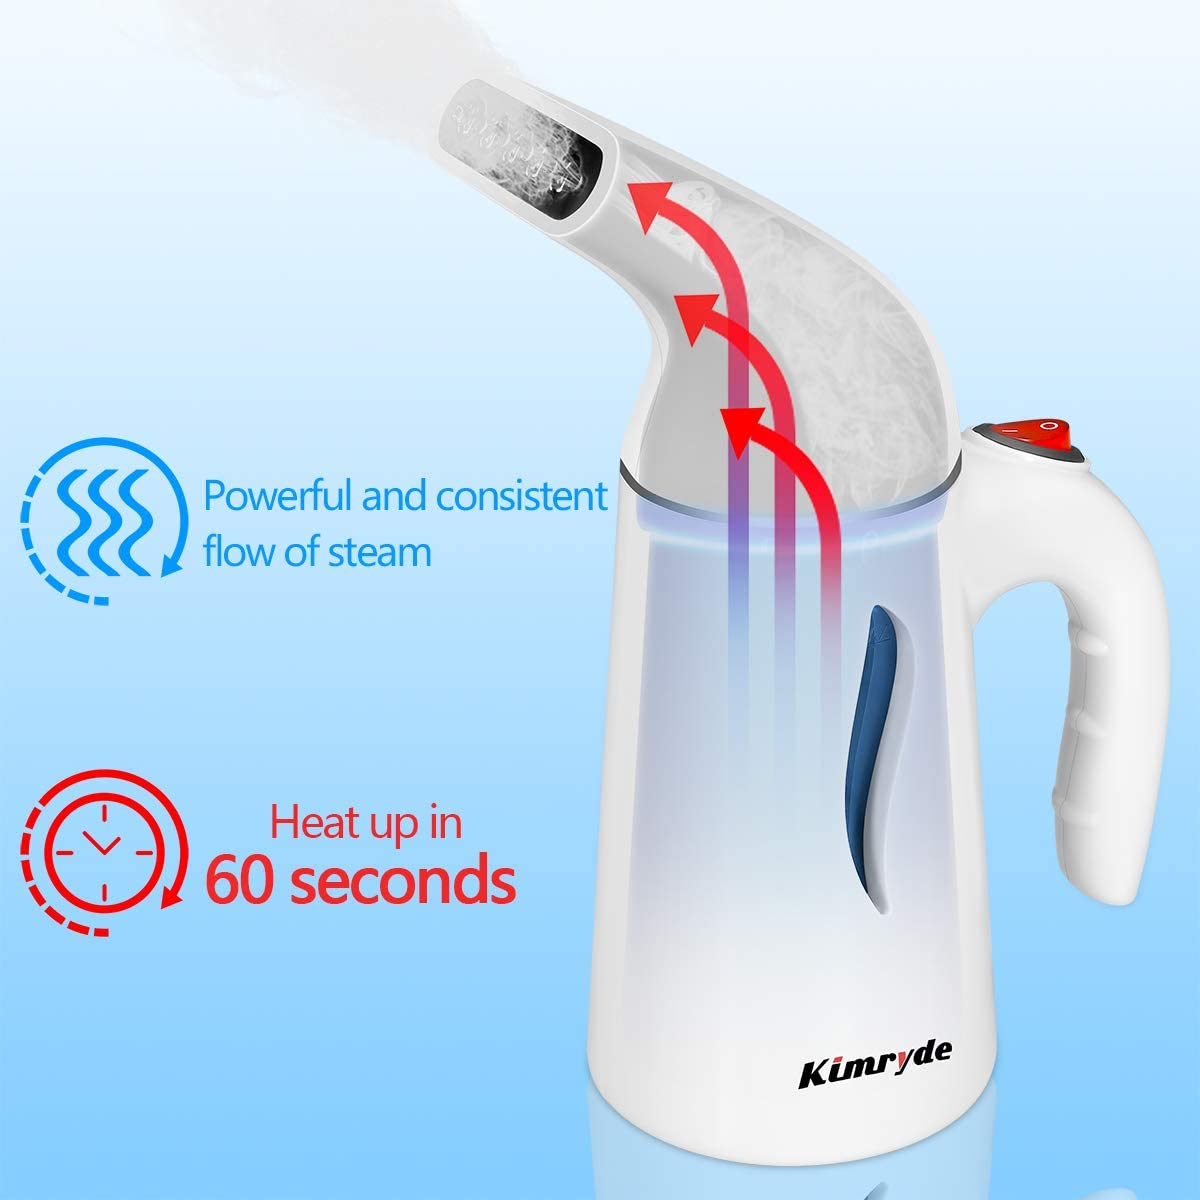 Steam Iron for Home//Travel Clean-Sterilize-Sanitize-Refresh-Defrost with UltraFast-Heat Kimryde Portable Steamer for Clothes 7-in-1 Handheld Garment//Fabric Steamer Wrinkle Remover